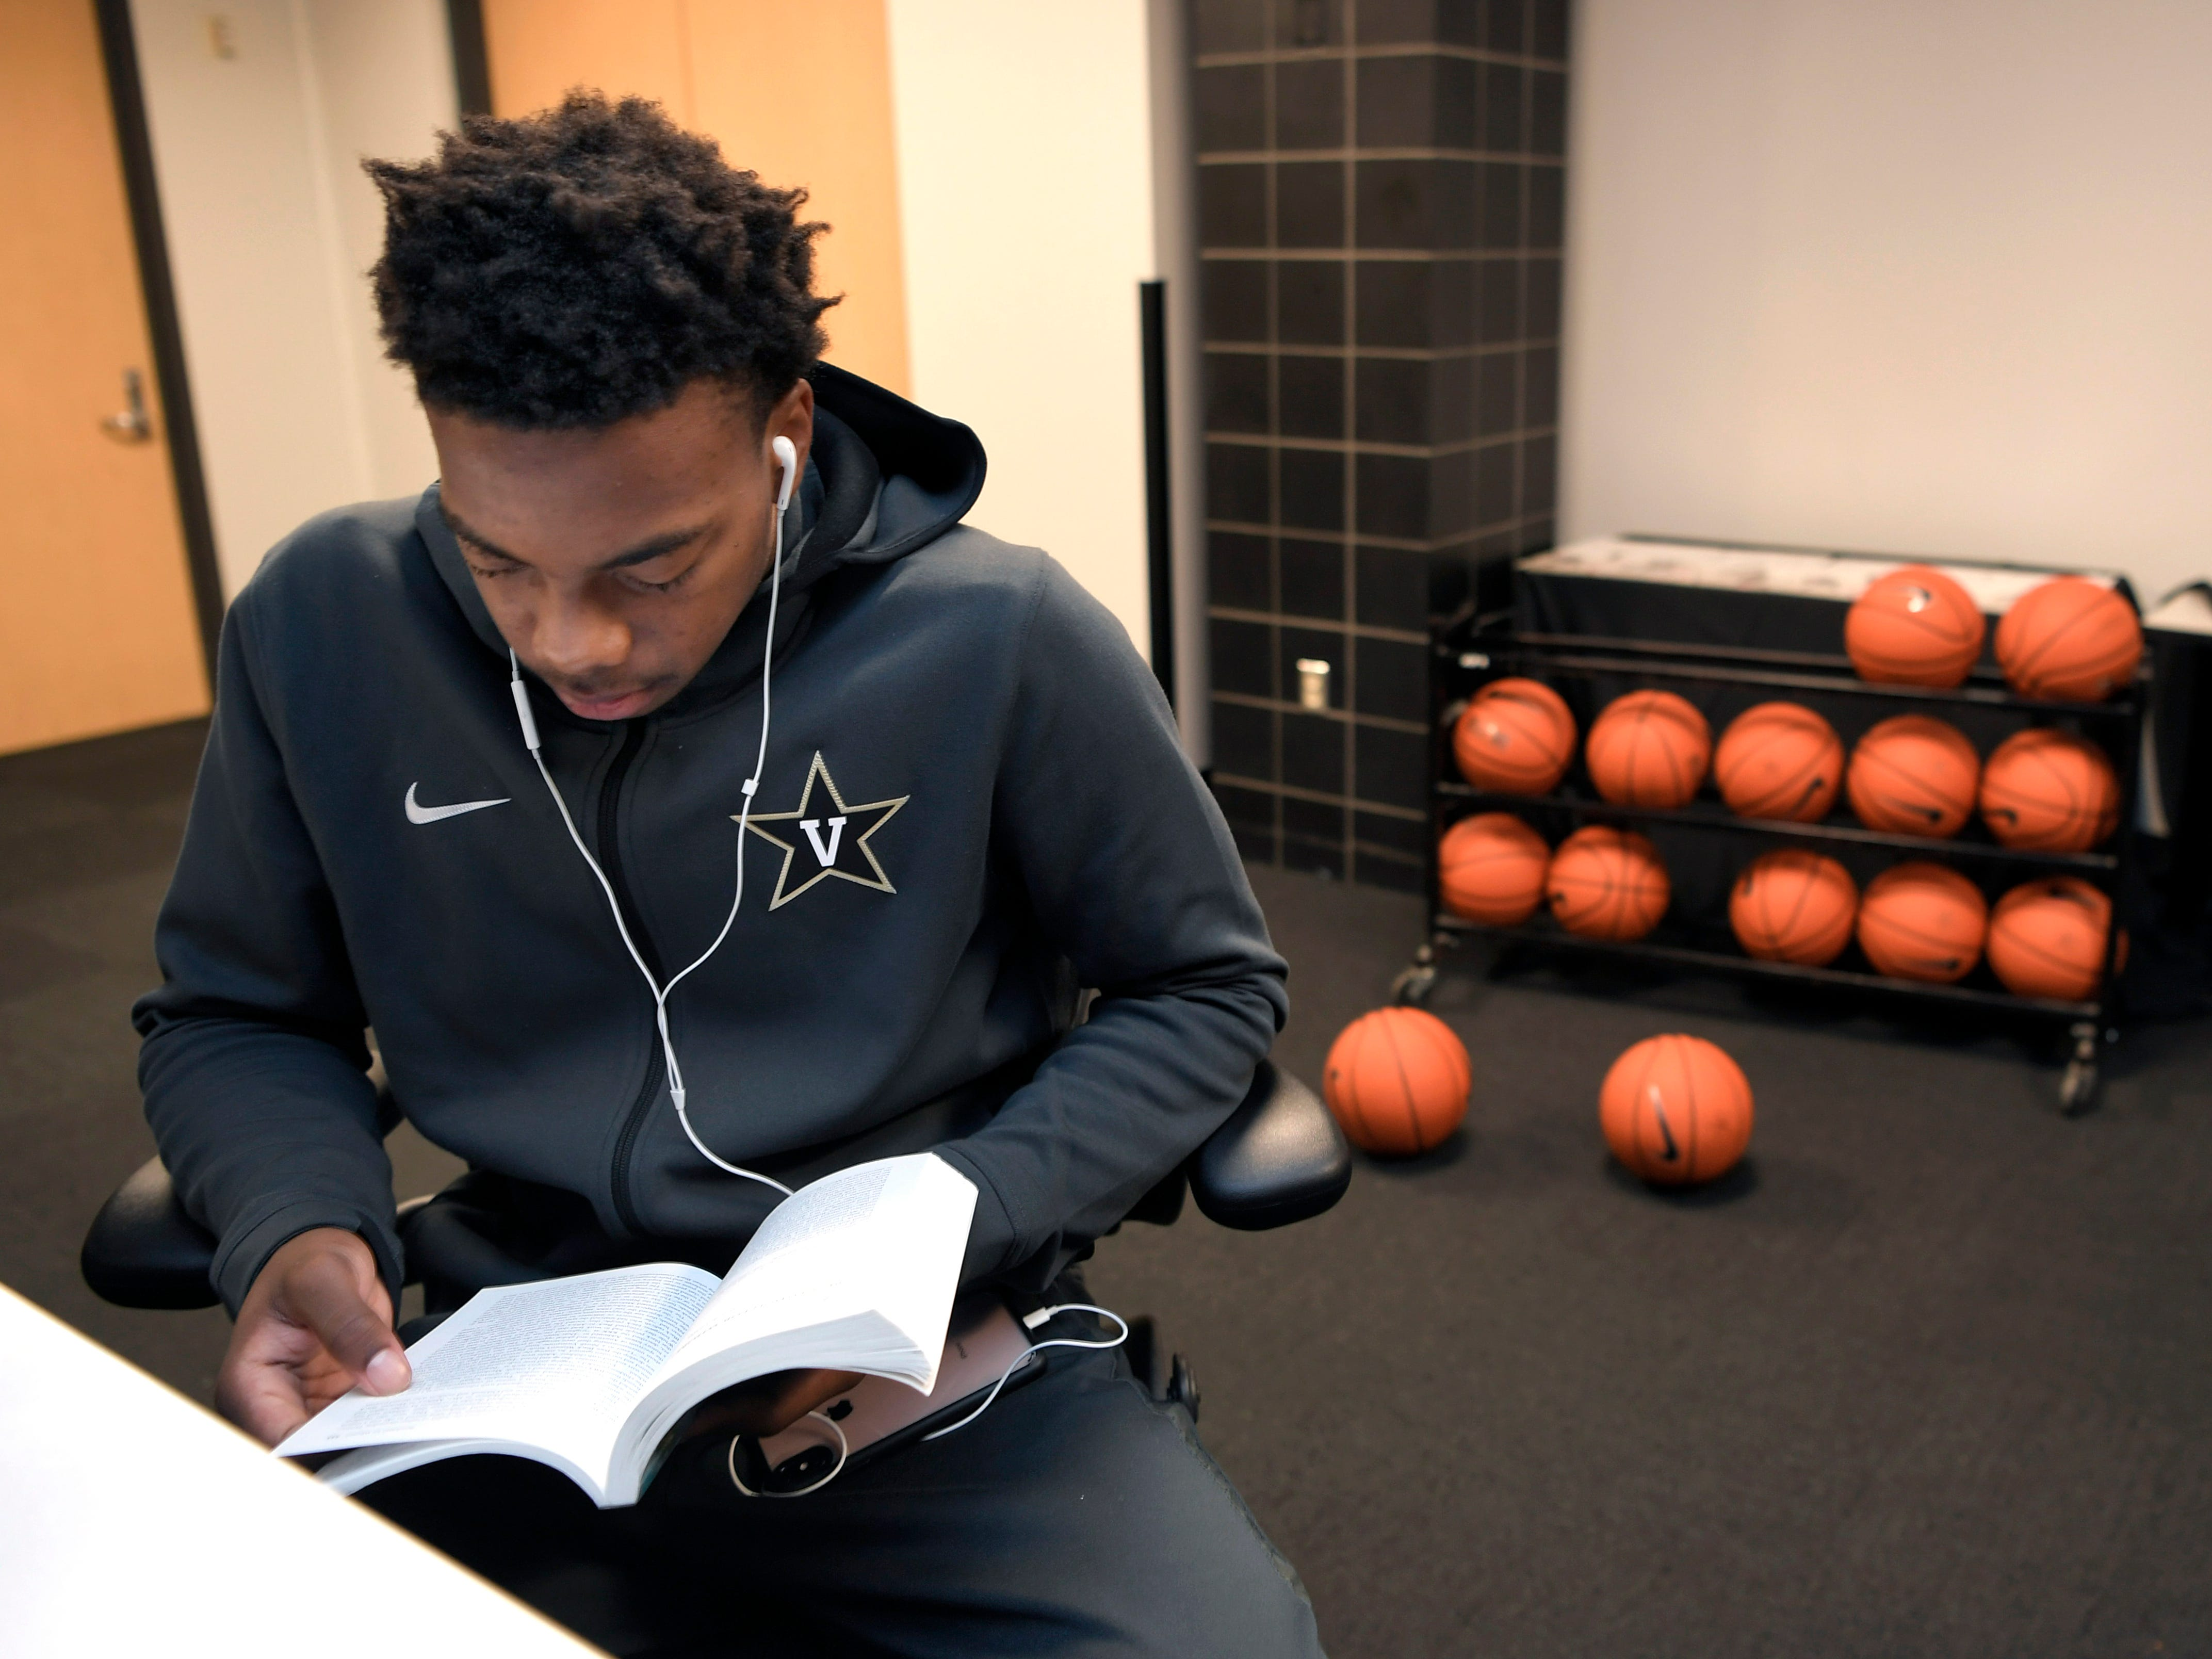 Vanderbilt basketball freshman Darius Garland  does homework in the players lounge before classes on Monday, Oct. 30, 2018.